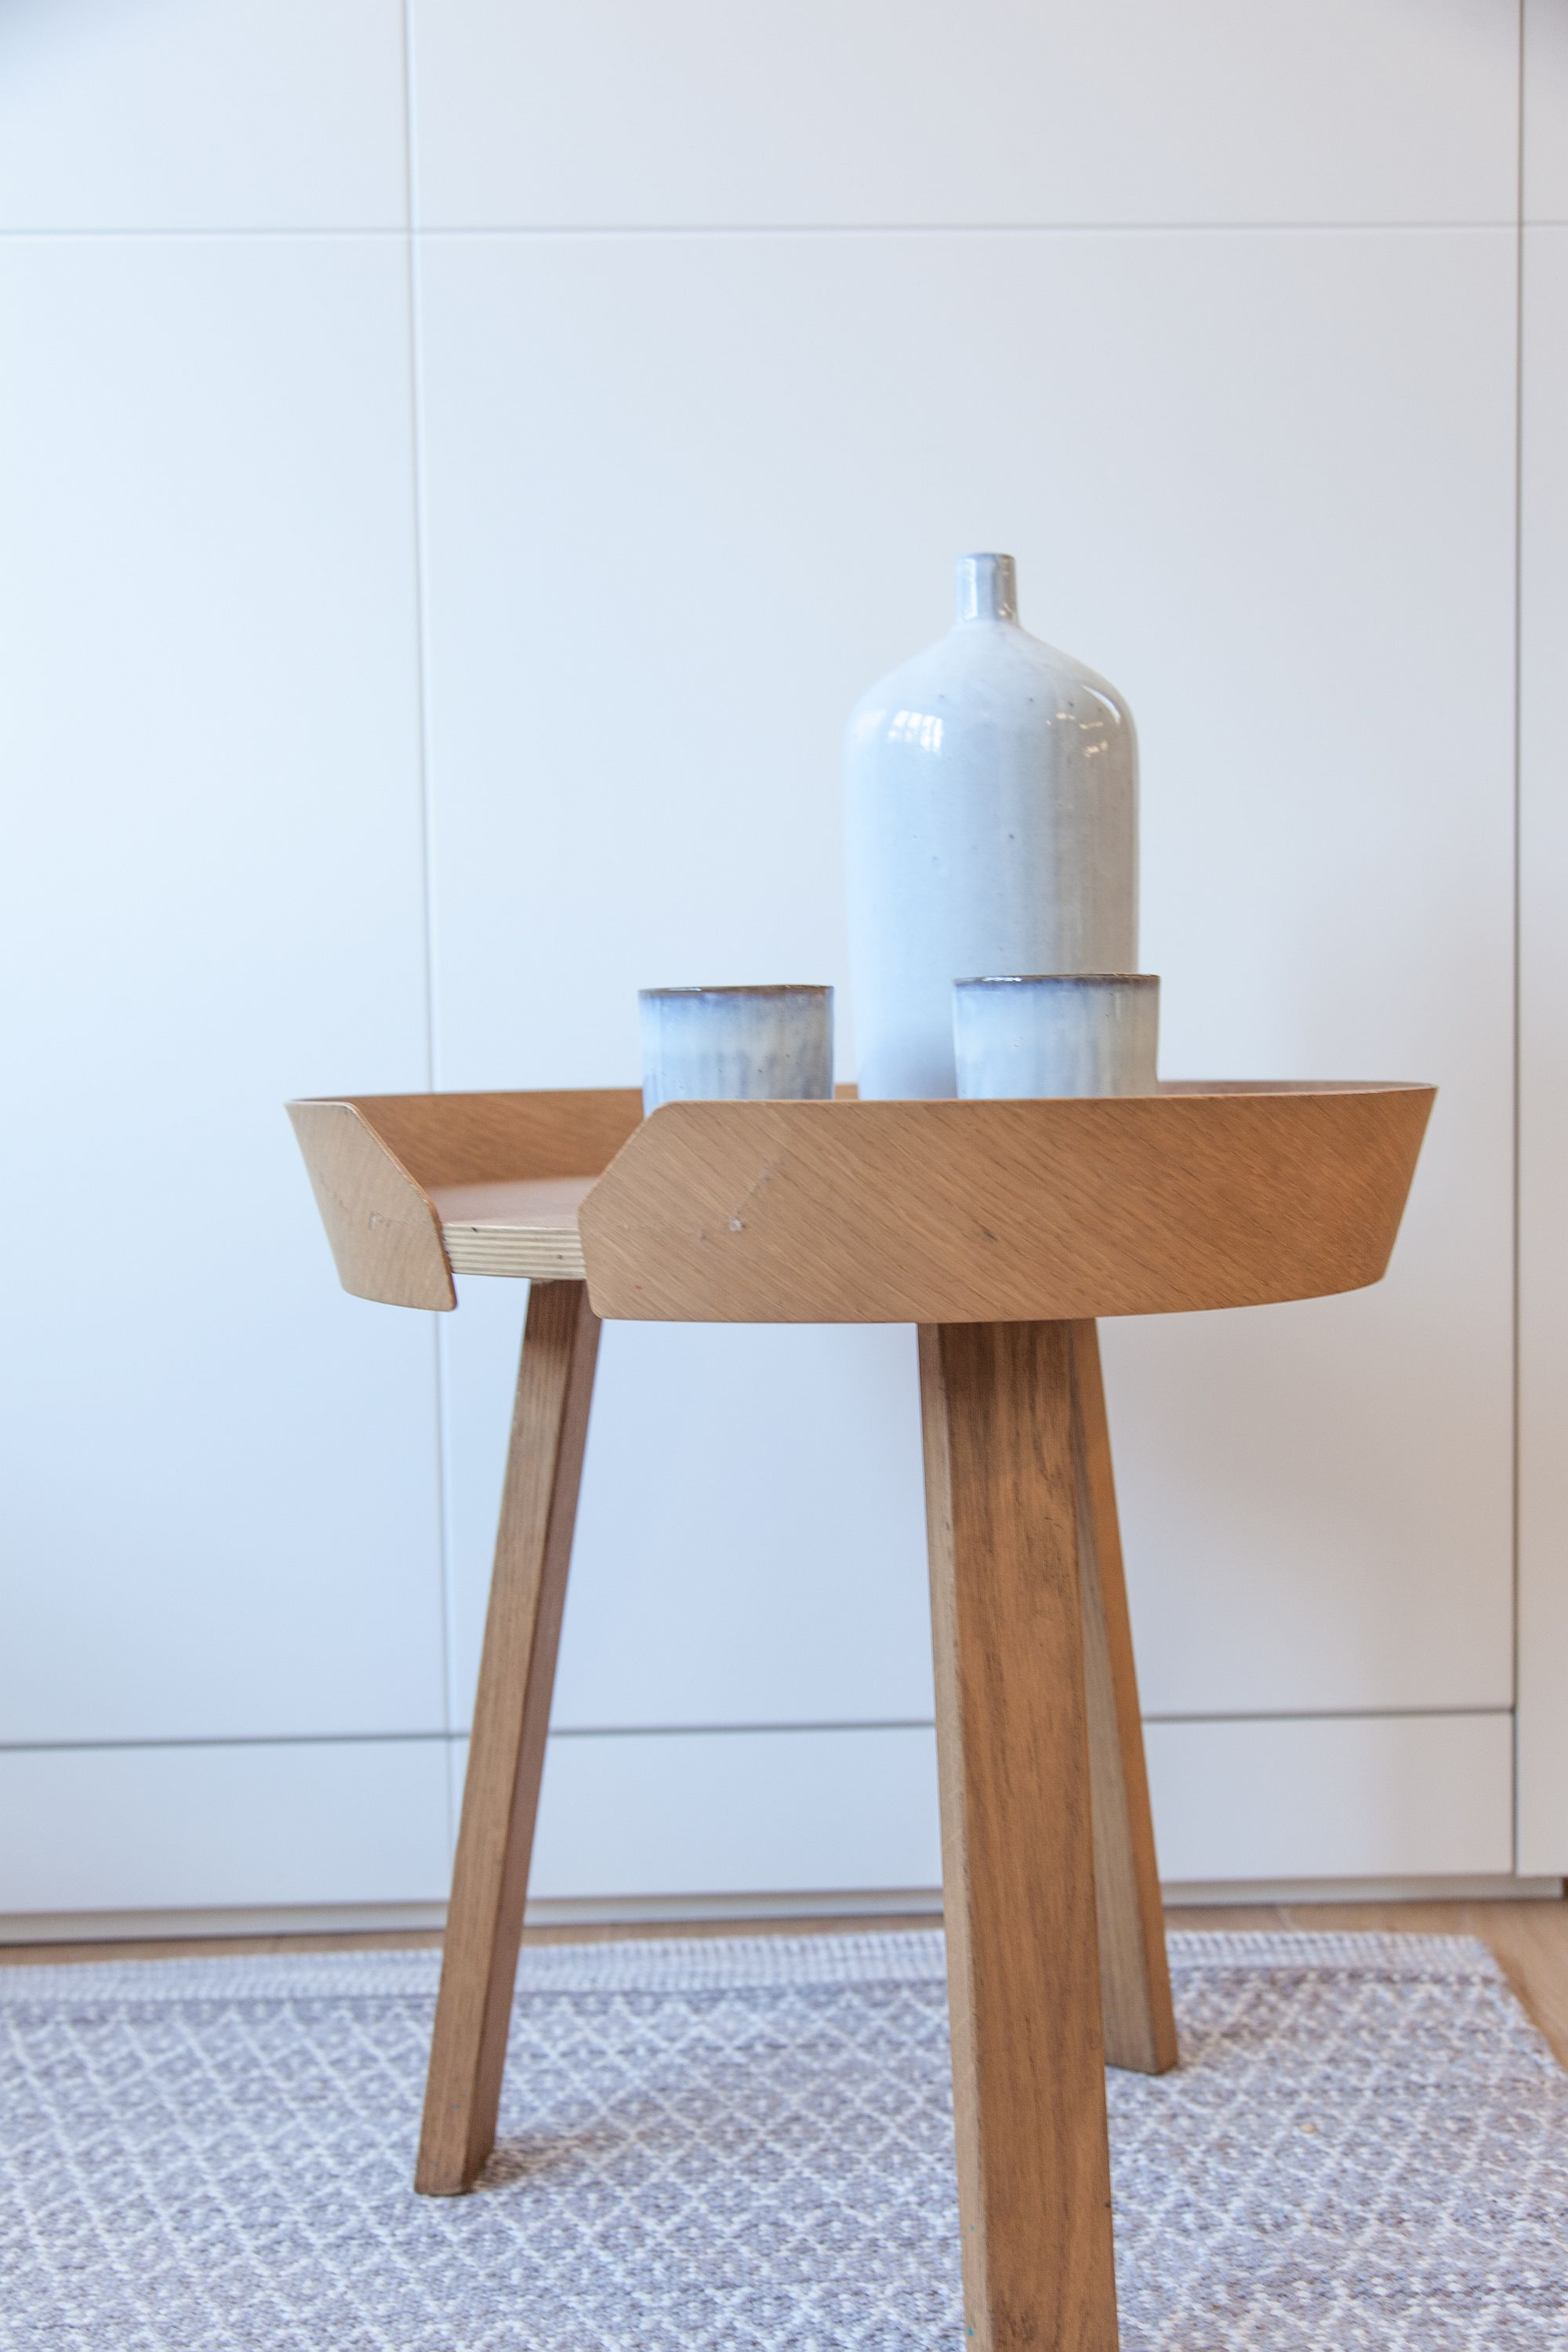 Wooden stools adds to the overall theme of the home